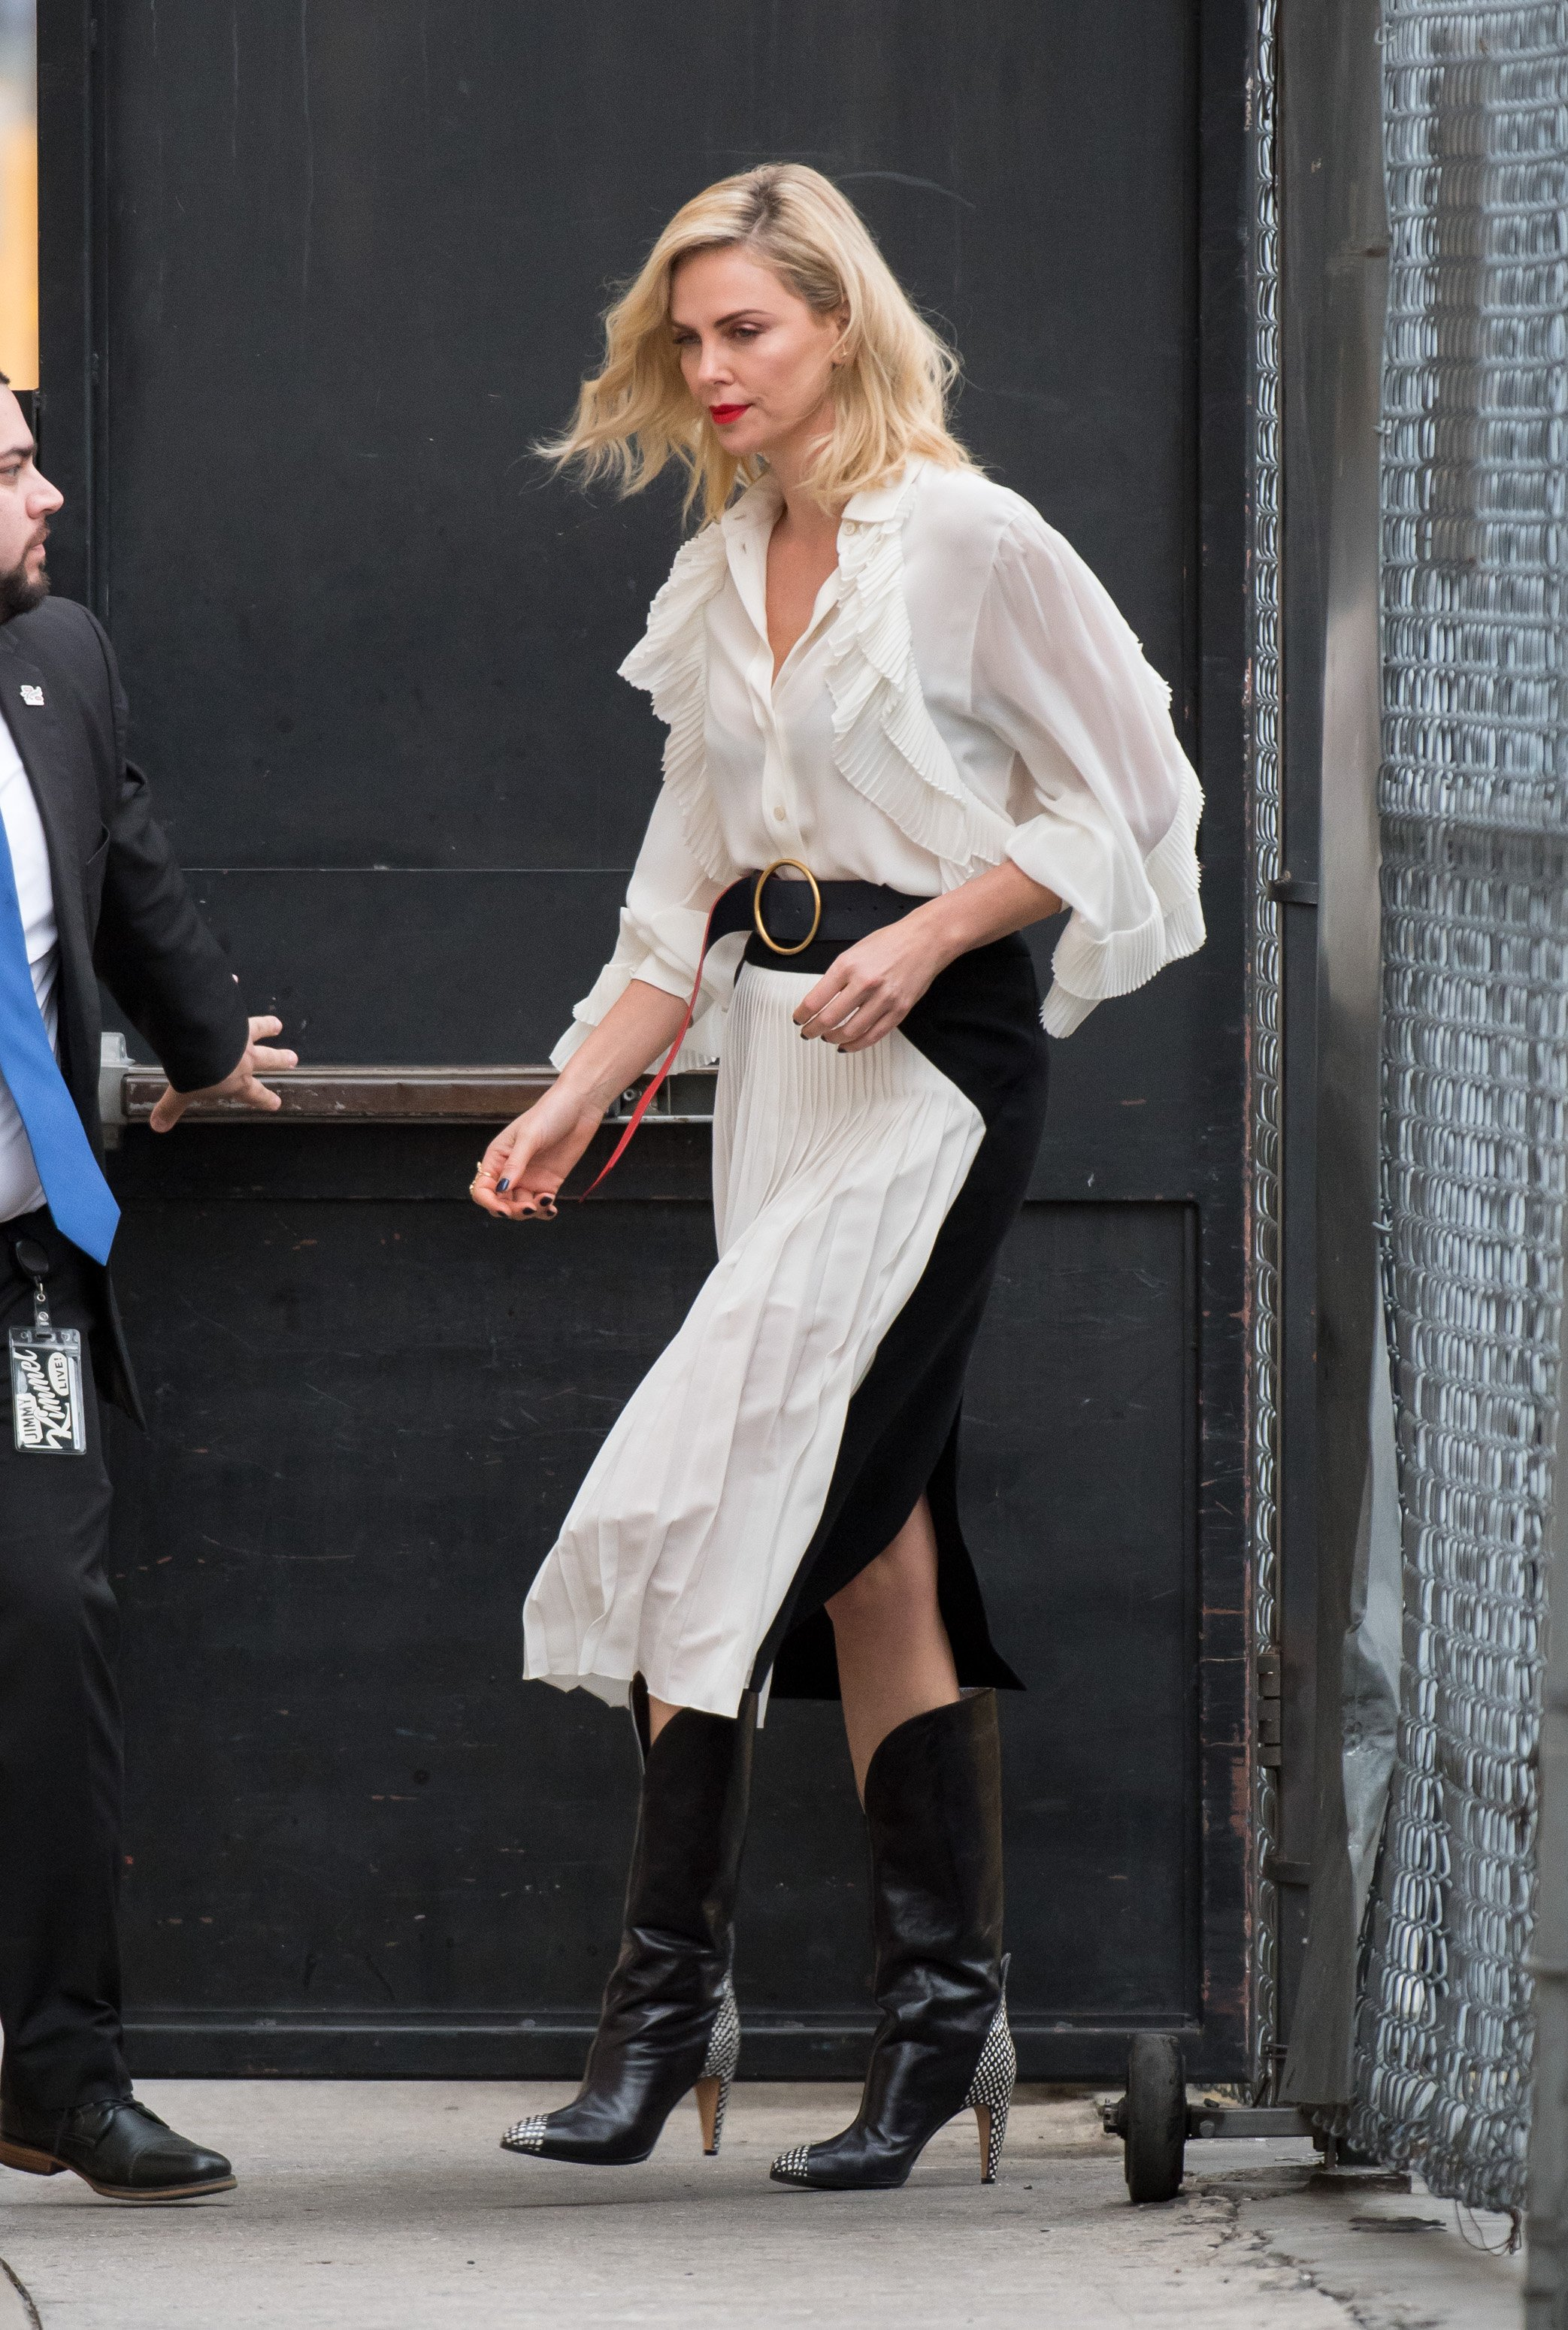 Charlize Theron is seen at 'Jimmy Kimmel Live' in Los Angeles, California.  NON EXCLUSIVE March 07, 2018. 07 Mar 2018 Pictured: Charlize Theron., Image: 365460699, License: Rights-managed, Restrictions: World Rights, Model Release: no, Credit line: Profimedia, Mega Agency